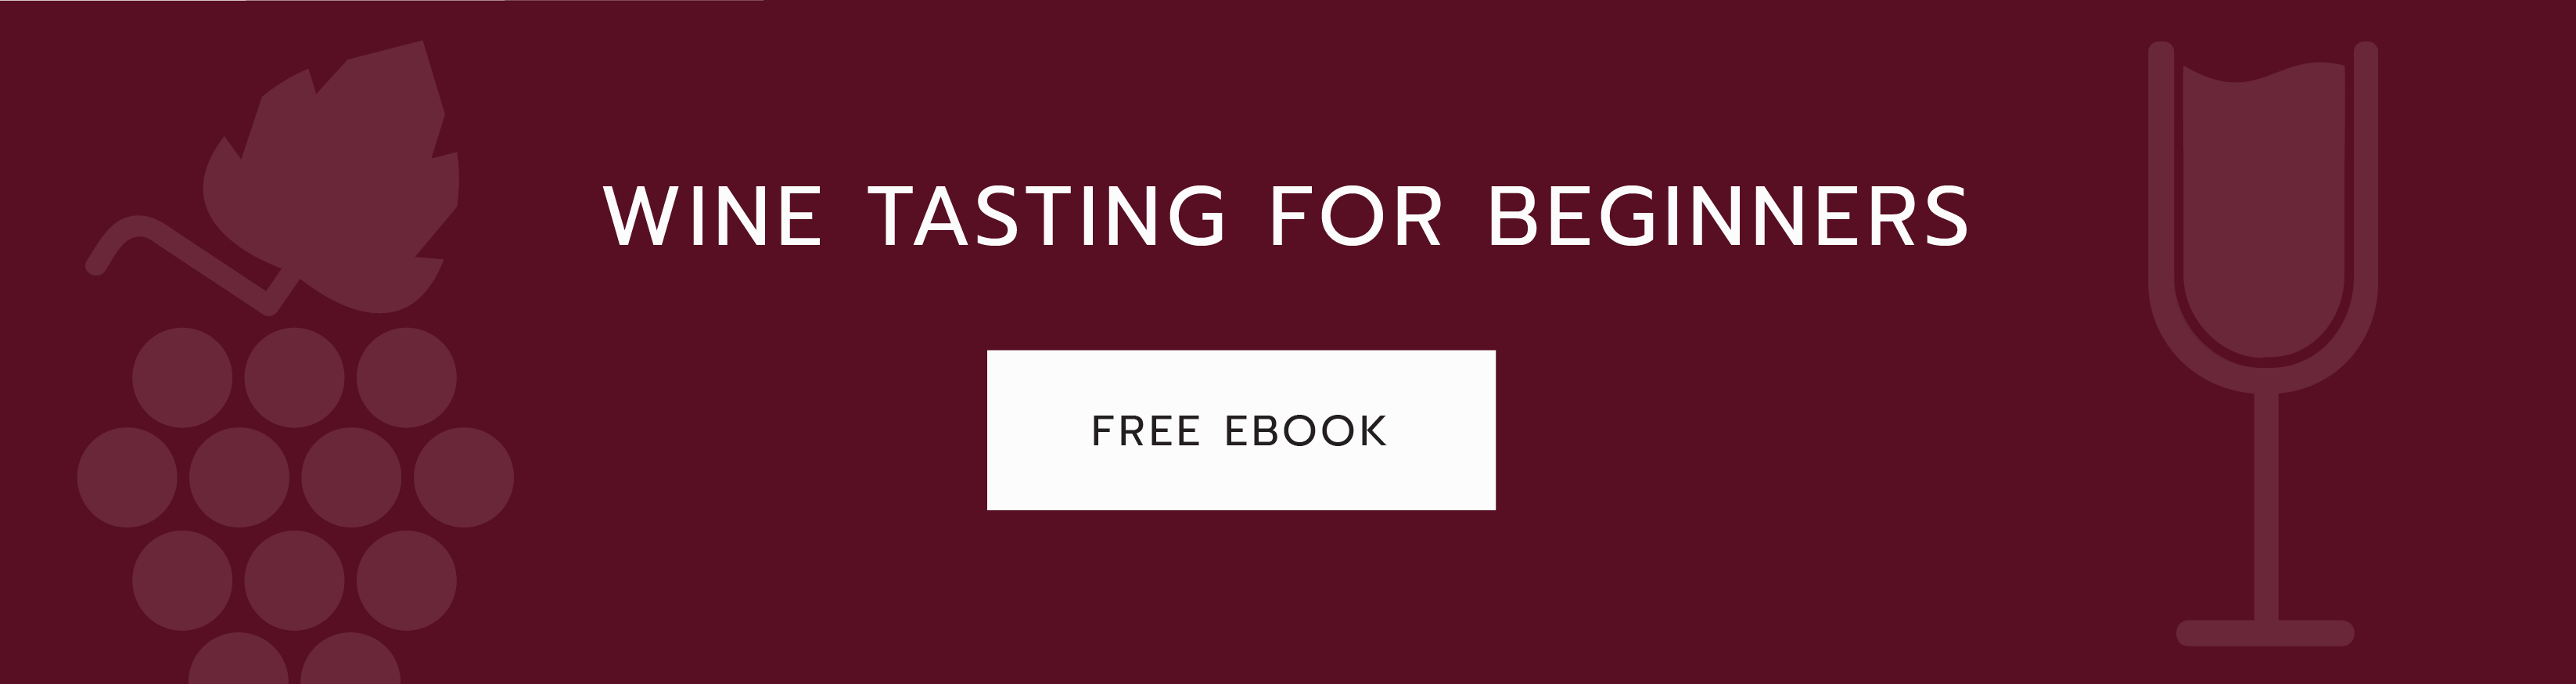 Wine Tasting for Beginners - Free Ebook